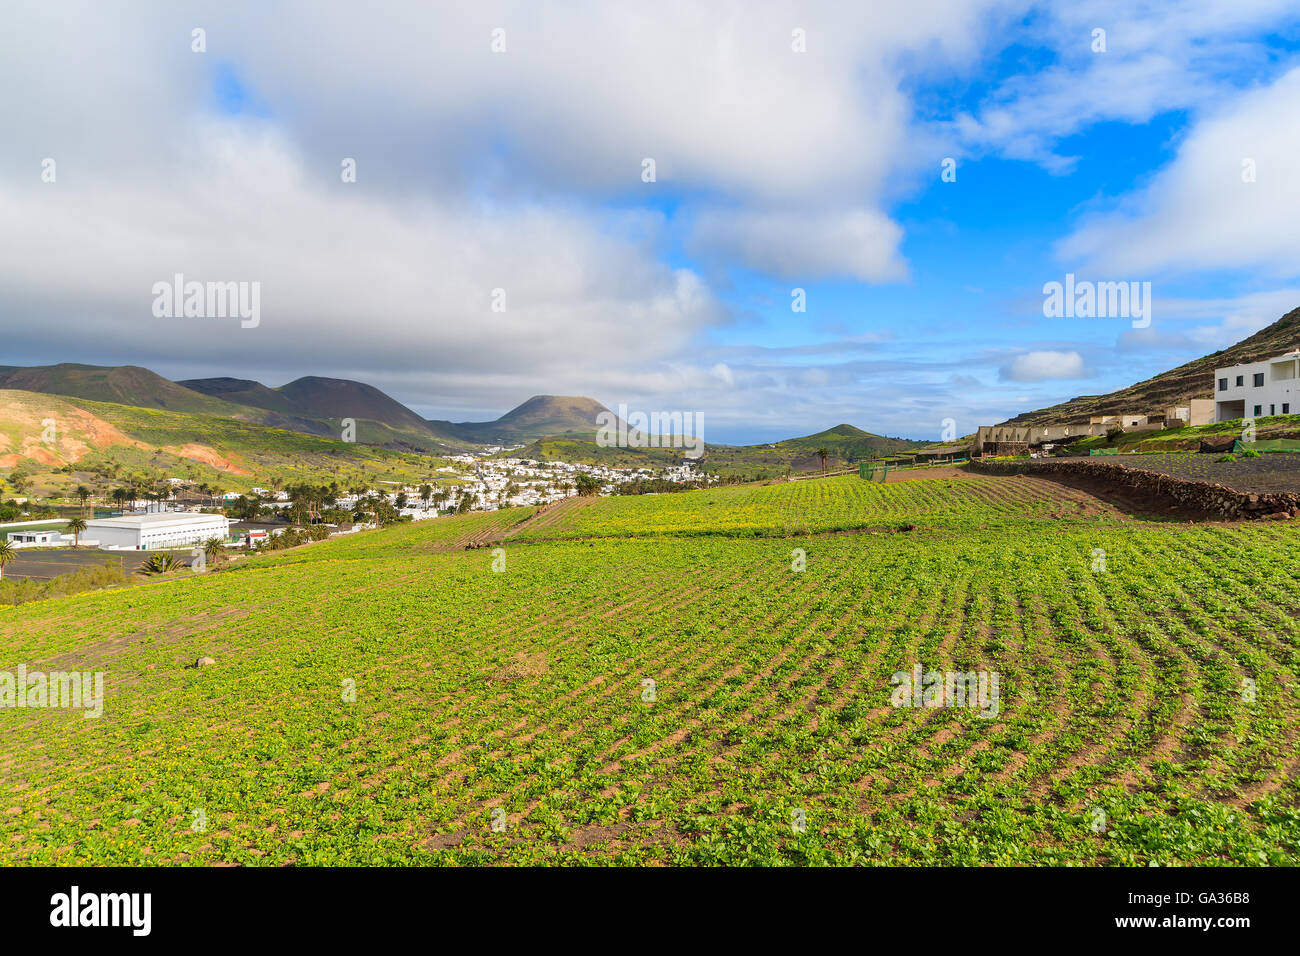 Green field in Haria mountain village, Lanzarote, Canary Islands, Spain - Stock Image